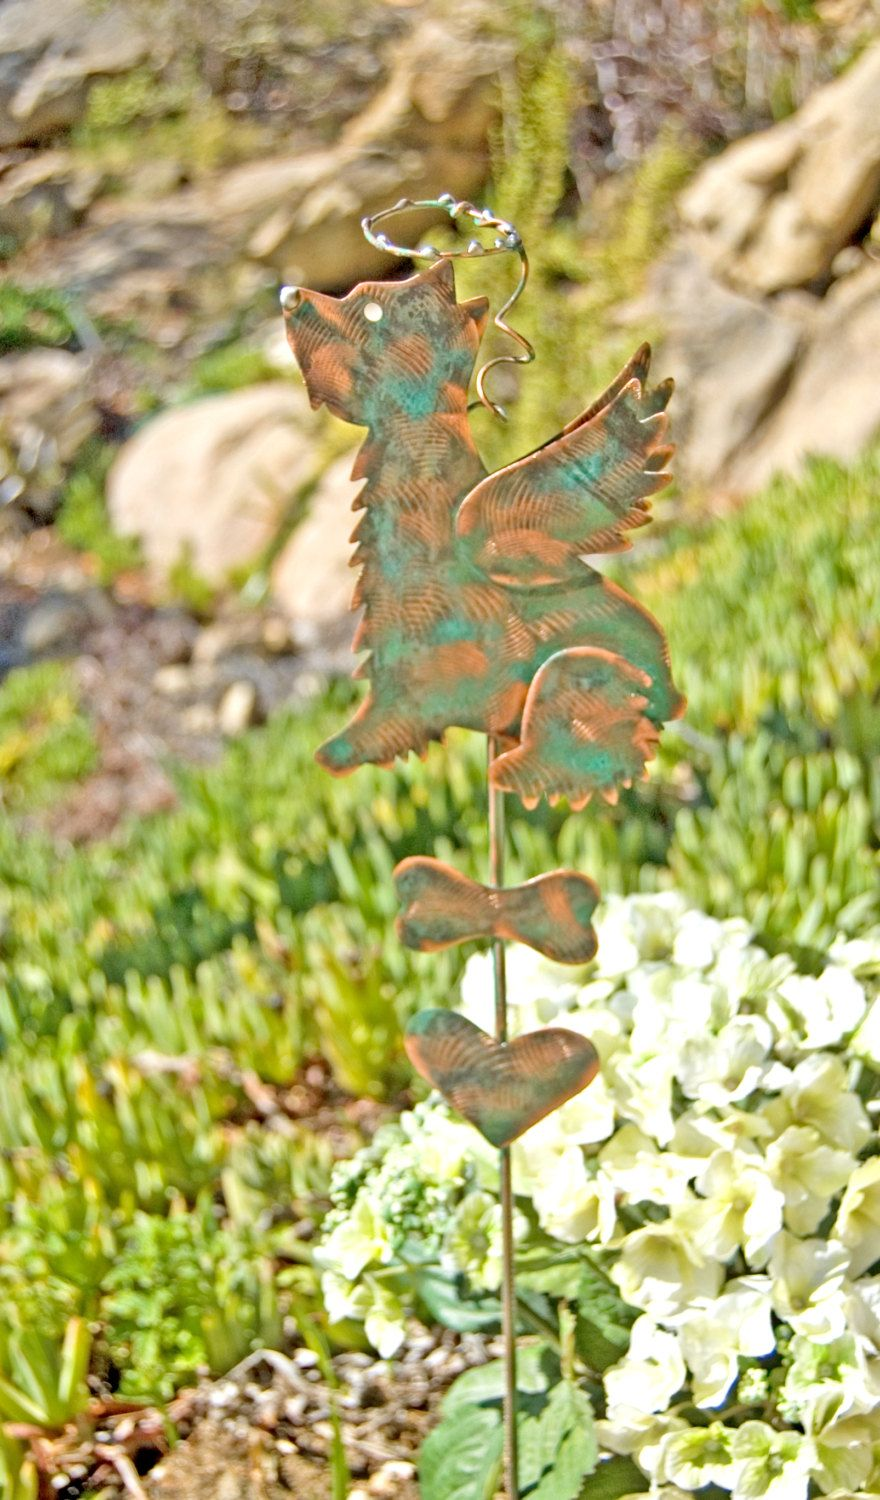 Decorative Metal Garden Stakes - Home Design Ideas and Pictures